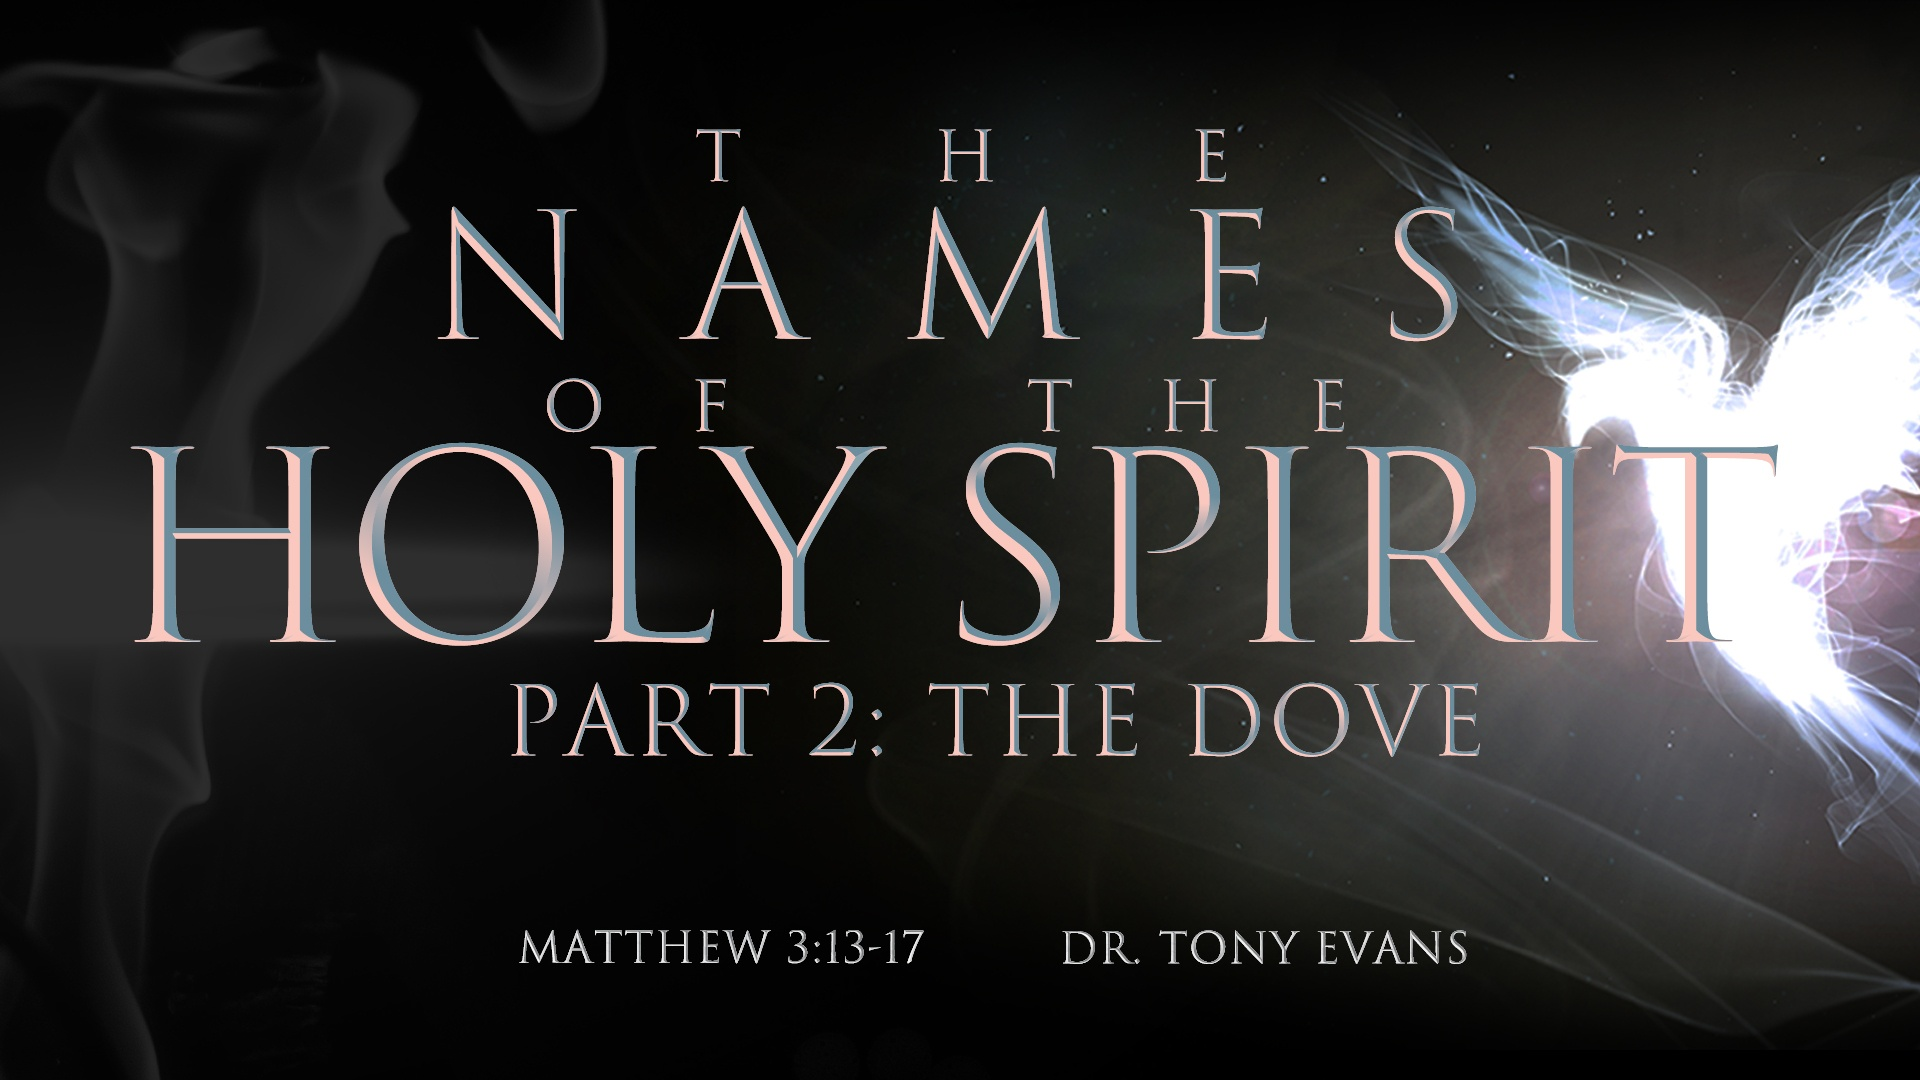 """The Dove"" by Dr. Tony Evans (series: Names of the Holy Spirit)"